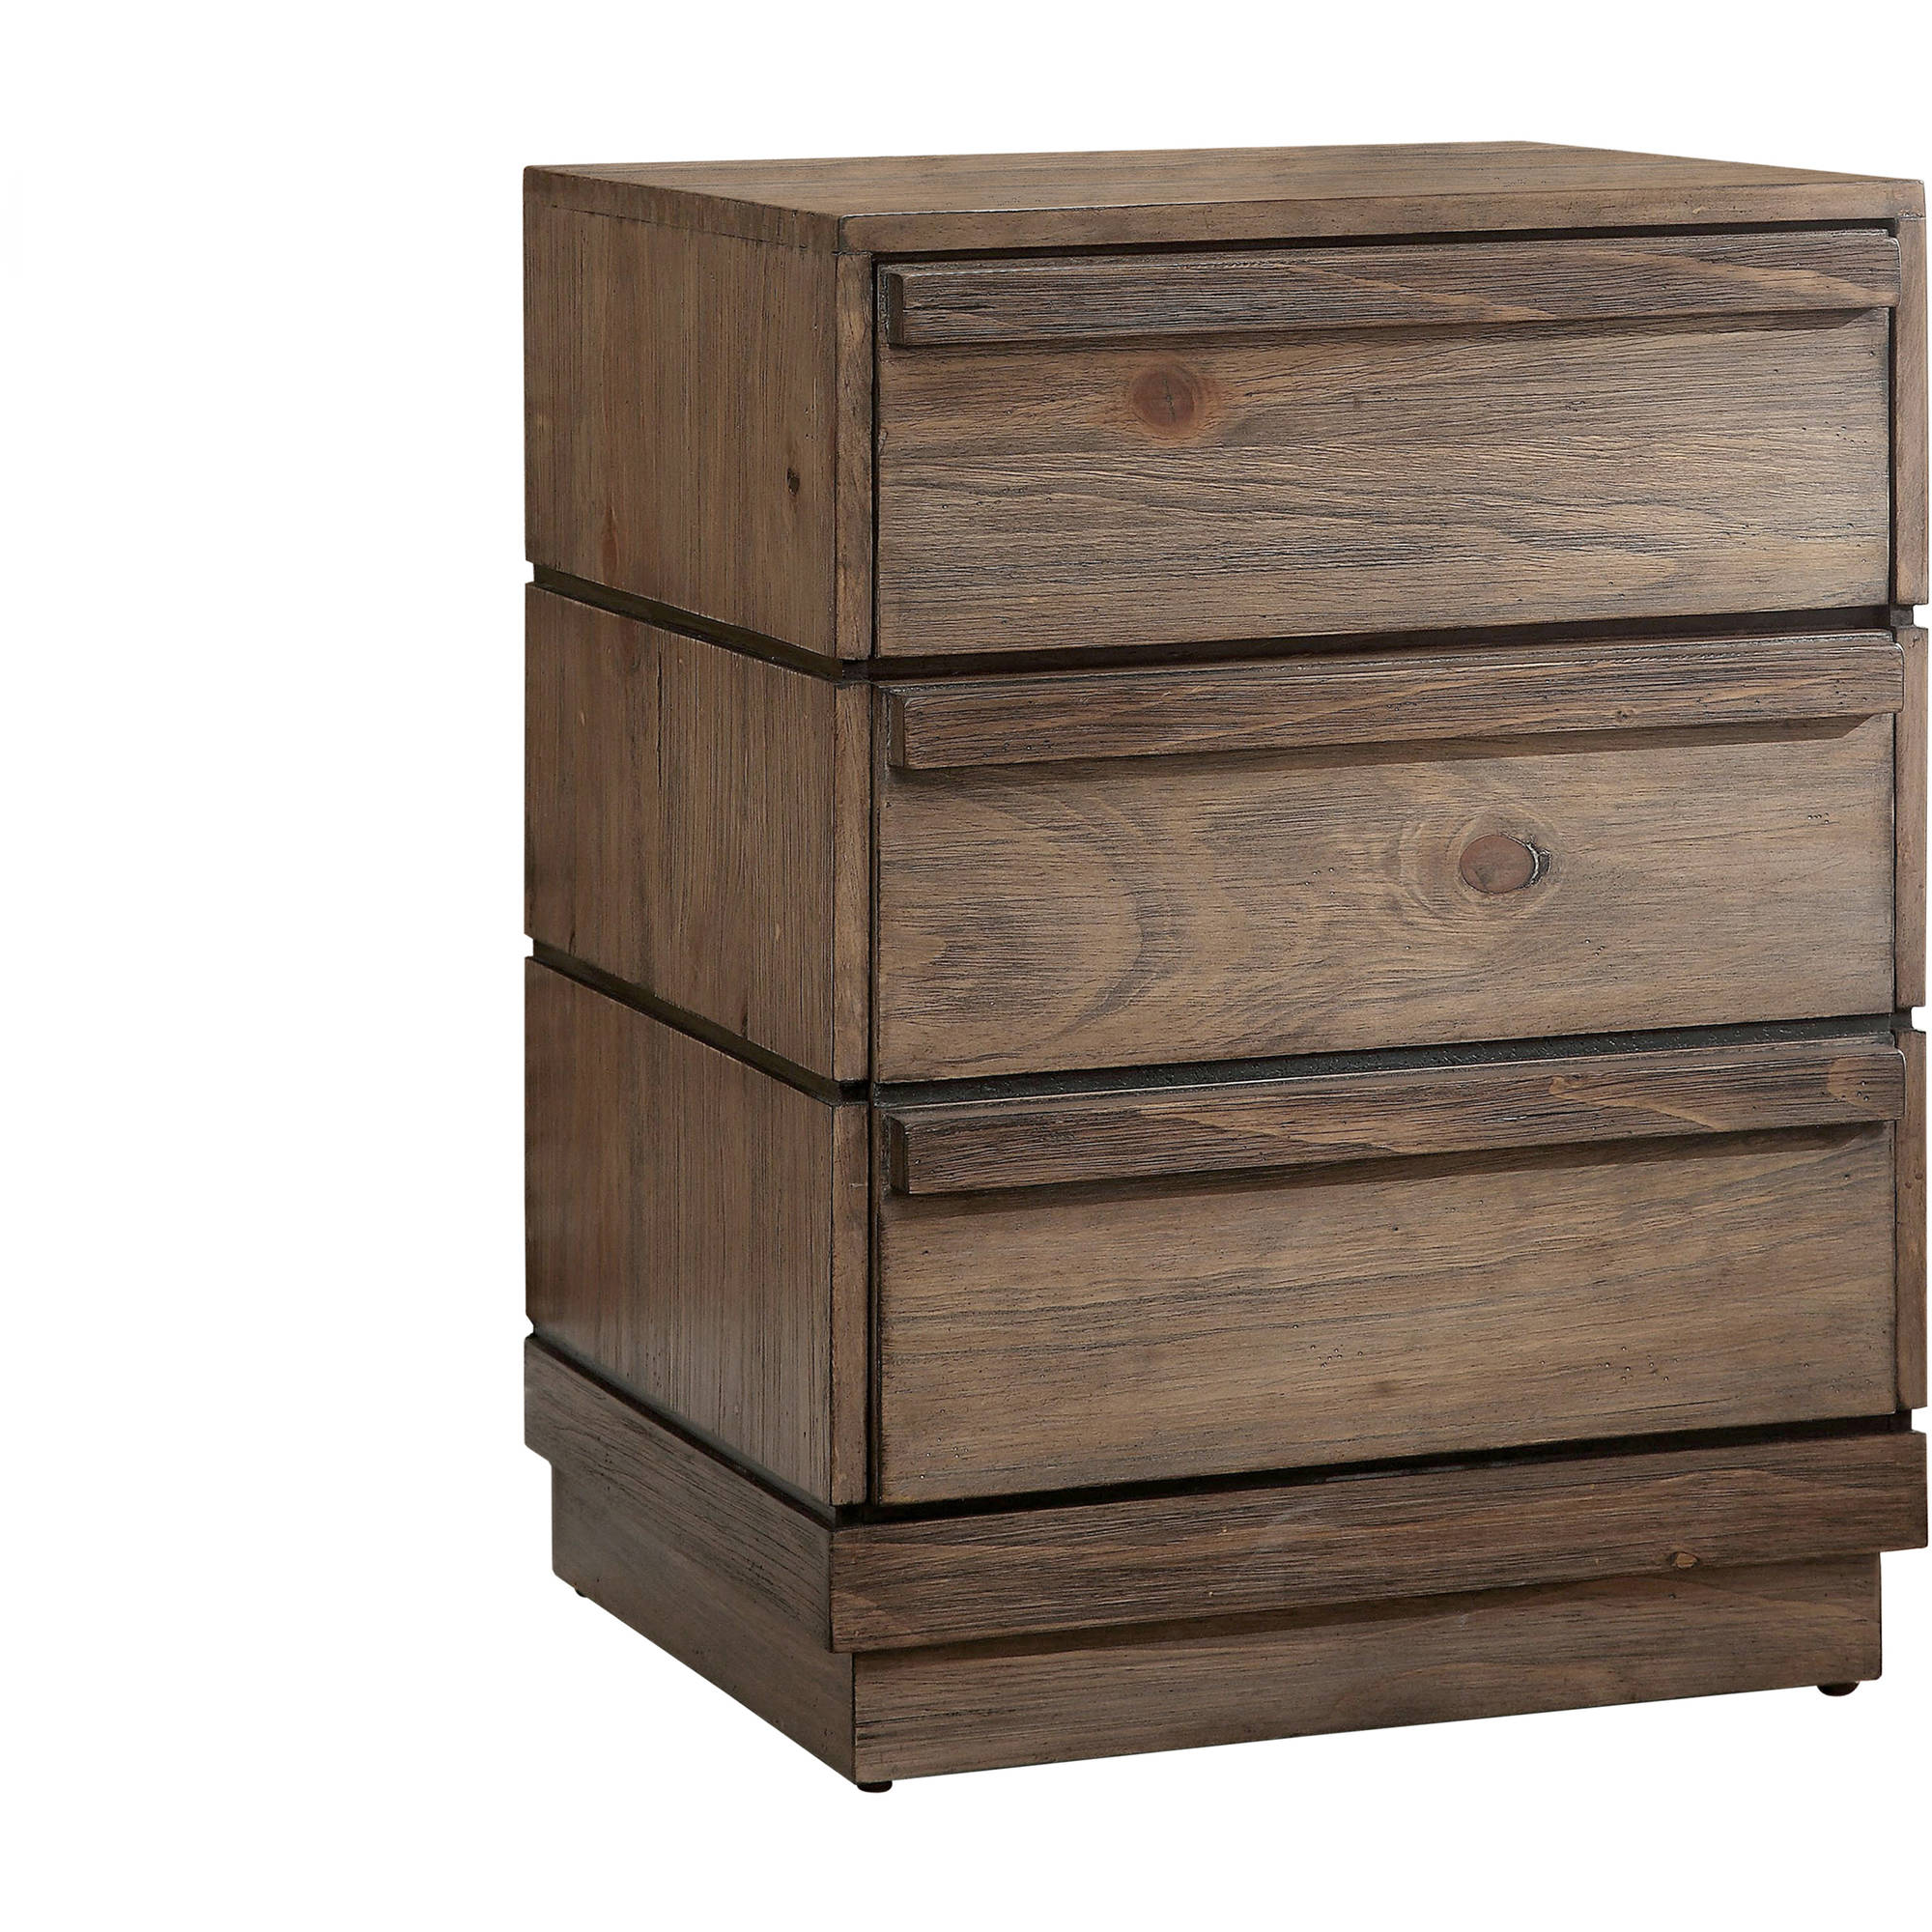 Furniture of America Dotson 3-Drawer Nightstand, Rustic Natural Tone